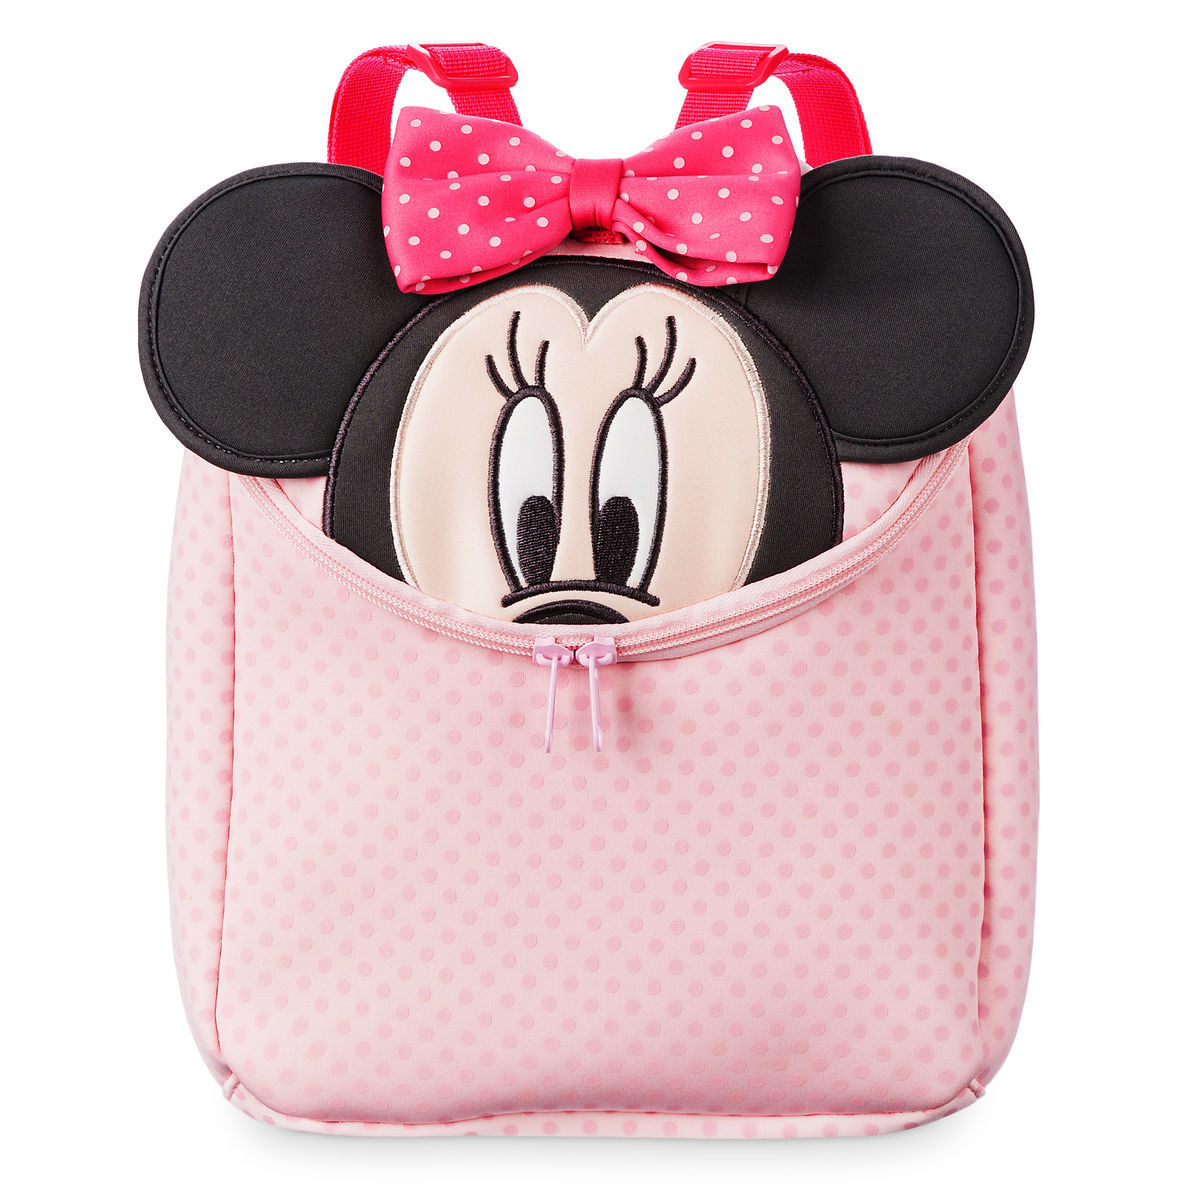 3bcc119a3e13 Product Image of Minnie Mouse Swim Bag for Kids   1